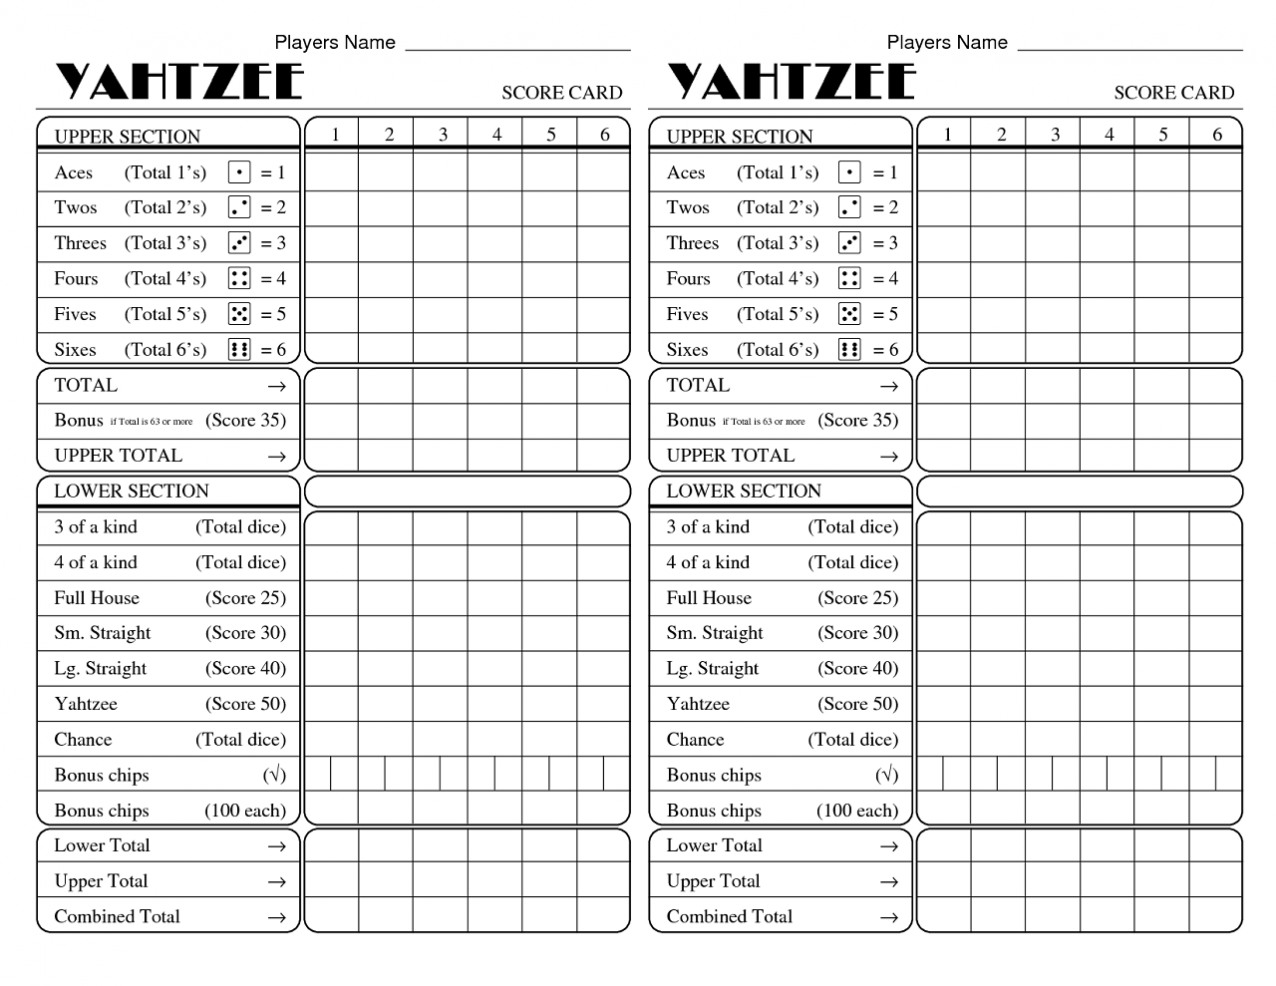 photo regarding Printable Yahtzee Score Sheets Pdf identify yahtzee rating card pdf